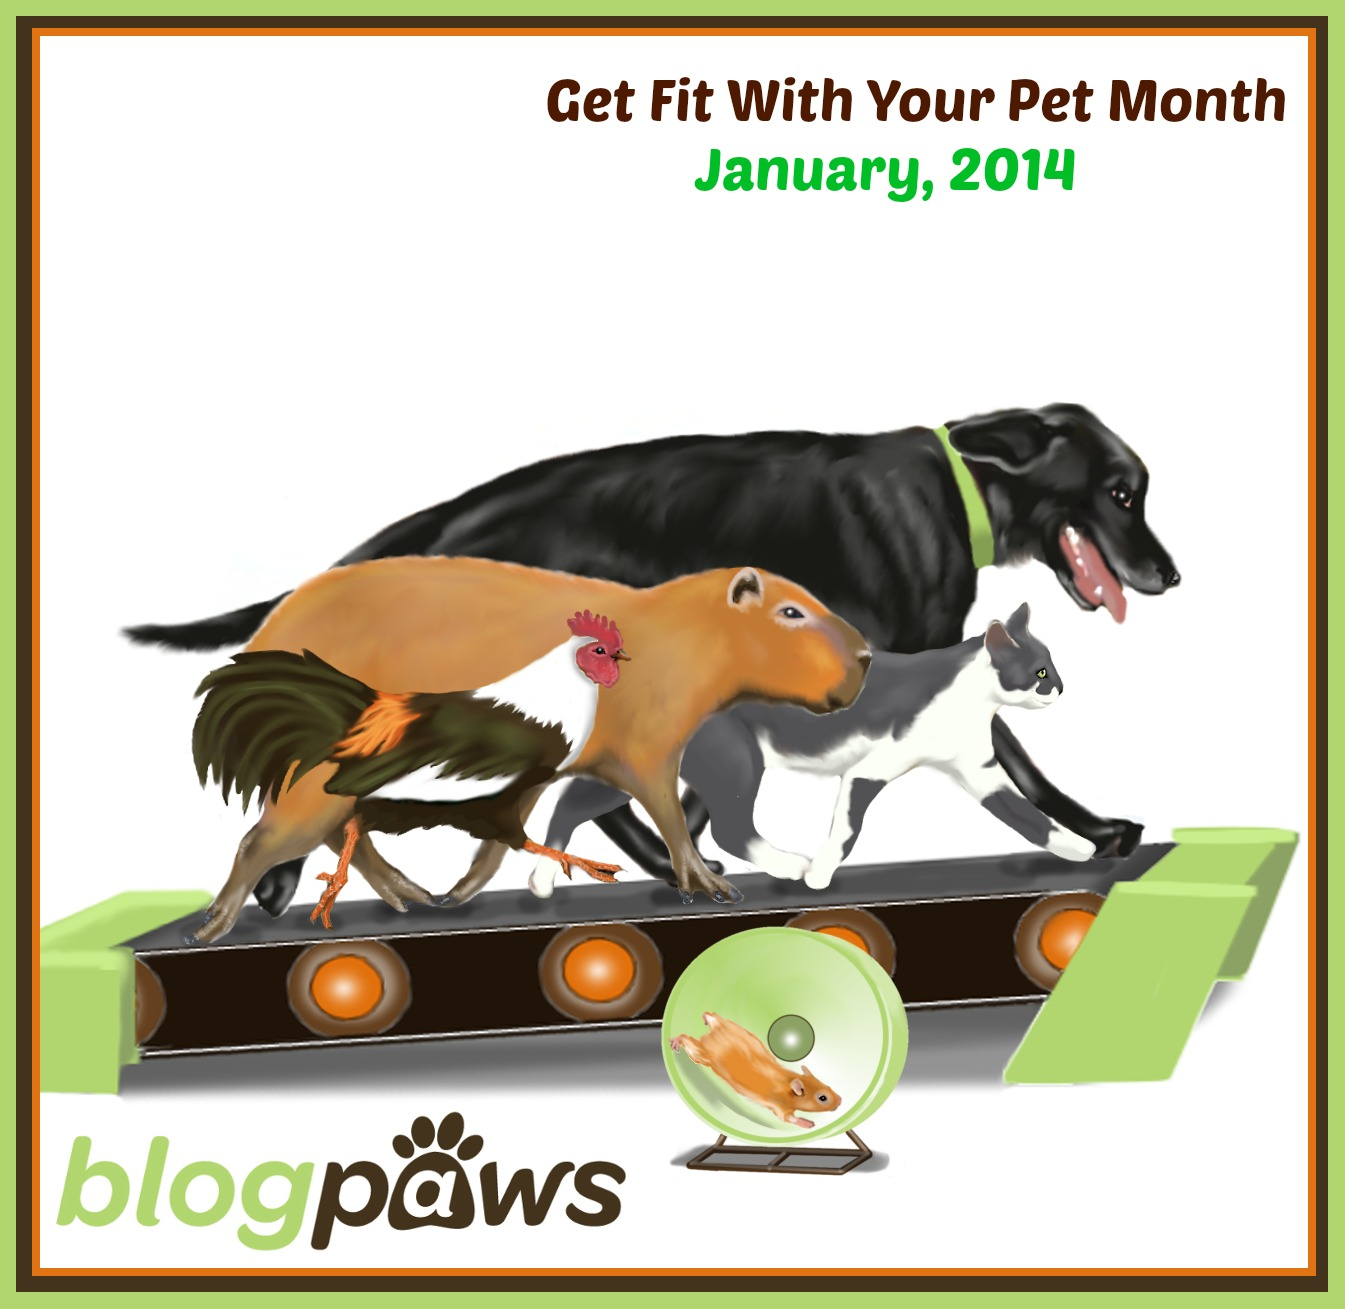 Get Fit with Your Pet Month